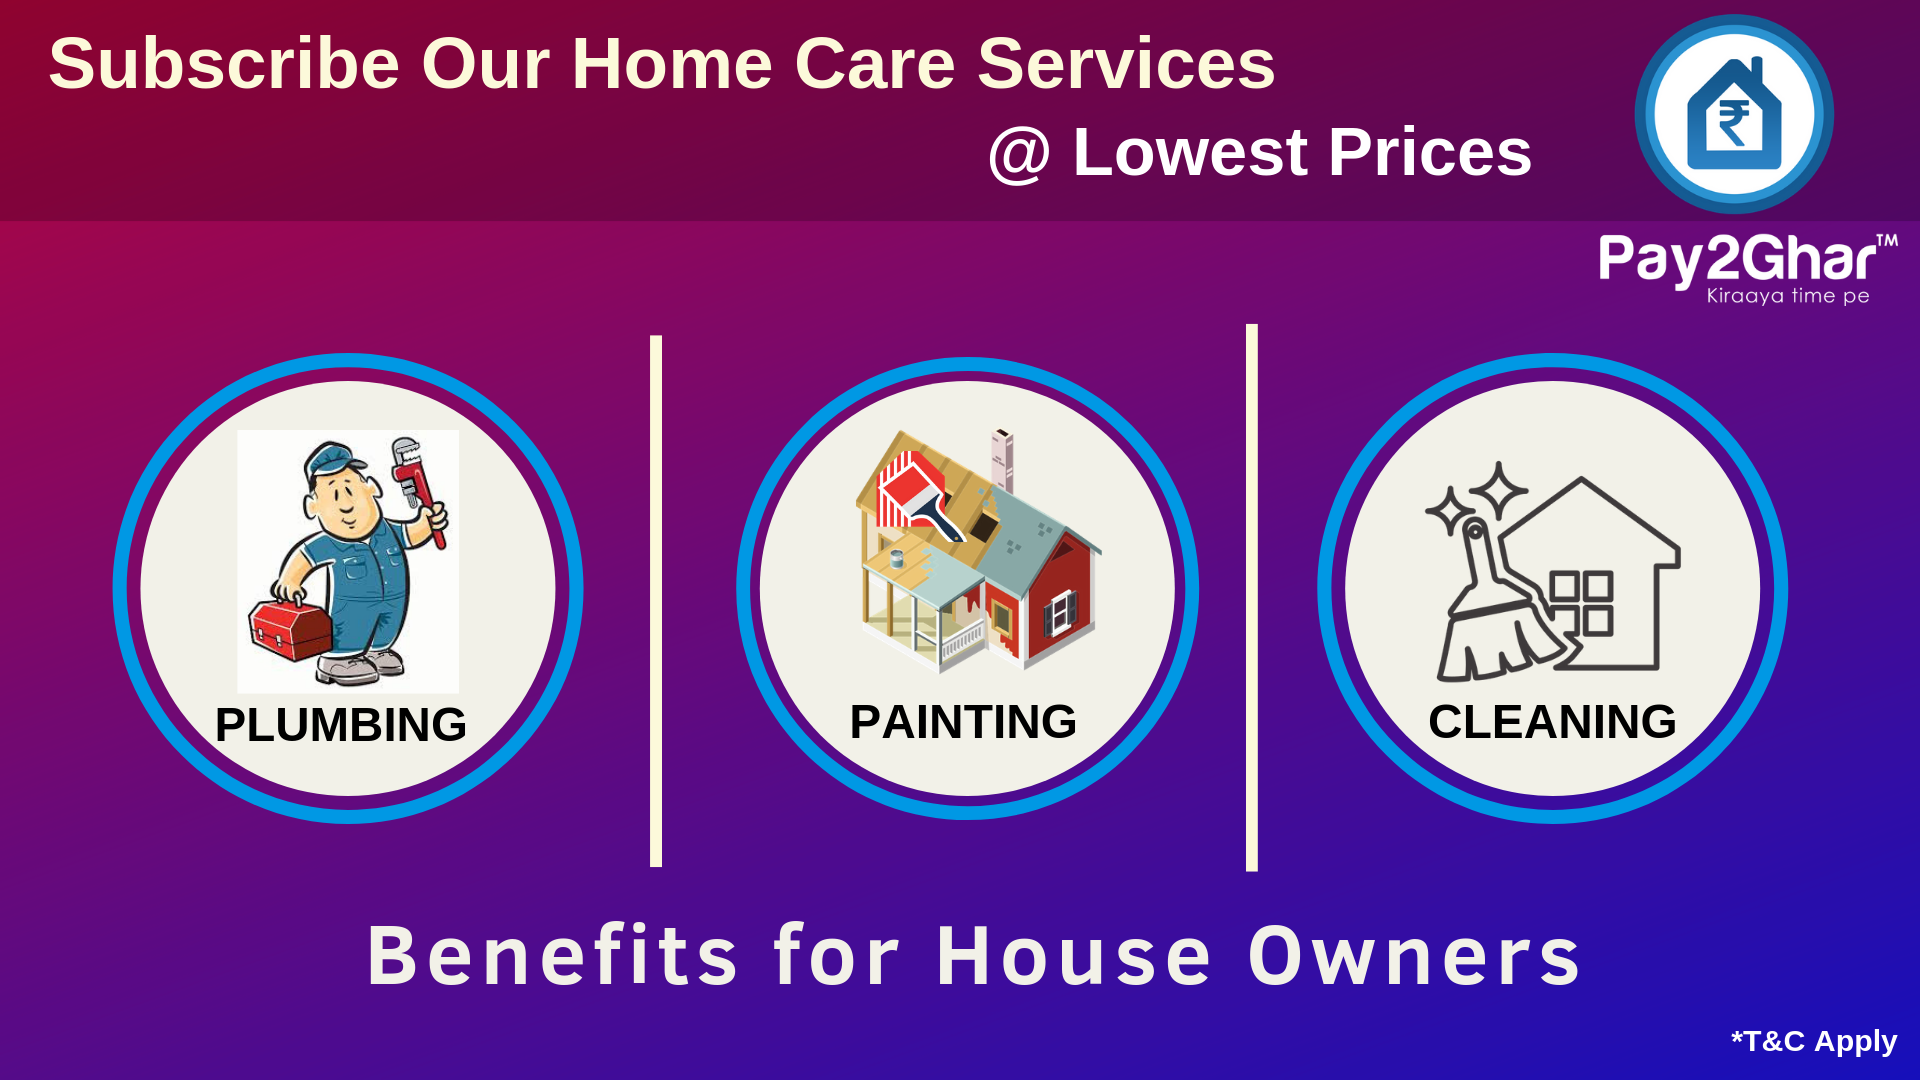 Online Home Care Services Rental Application Application Apps Being A Landlord